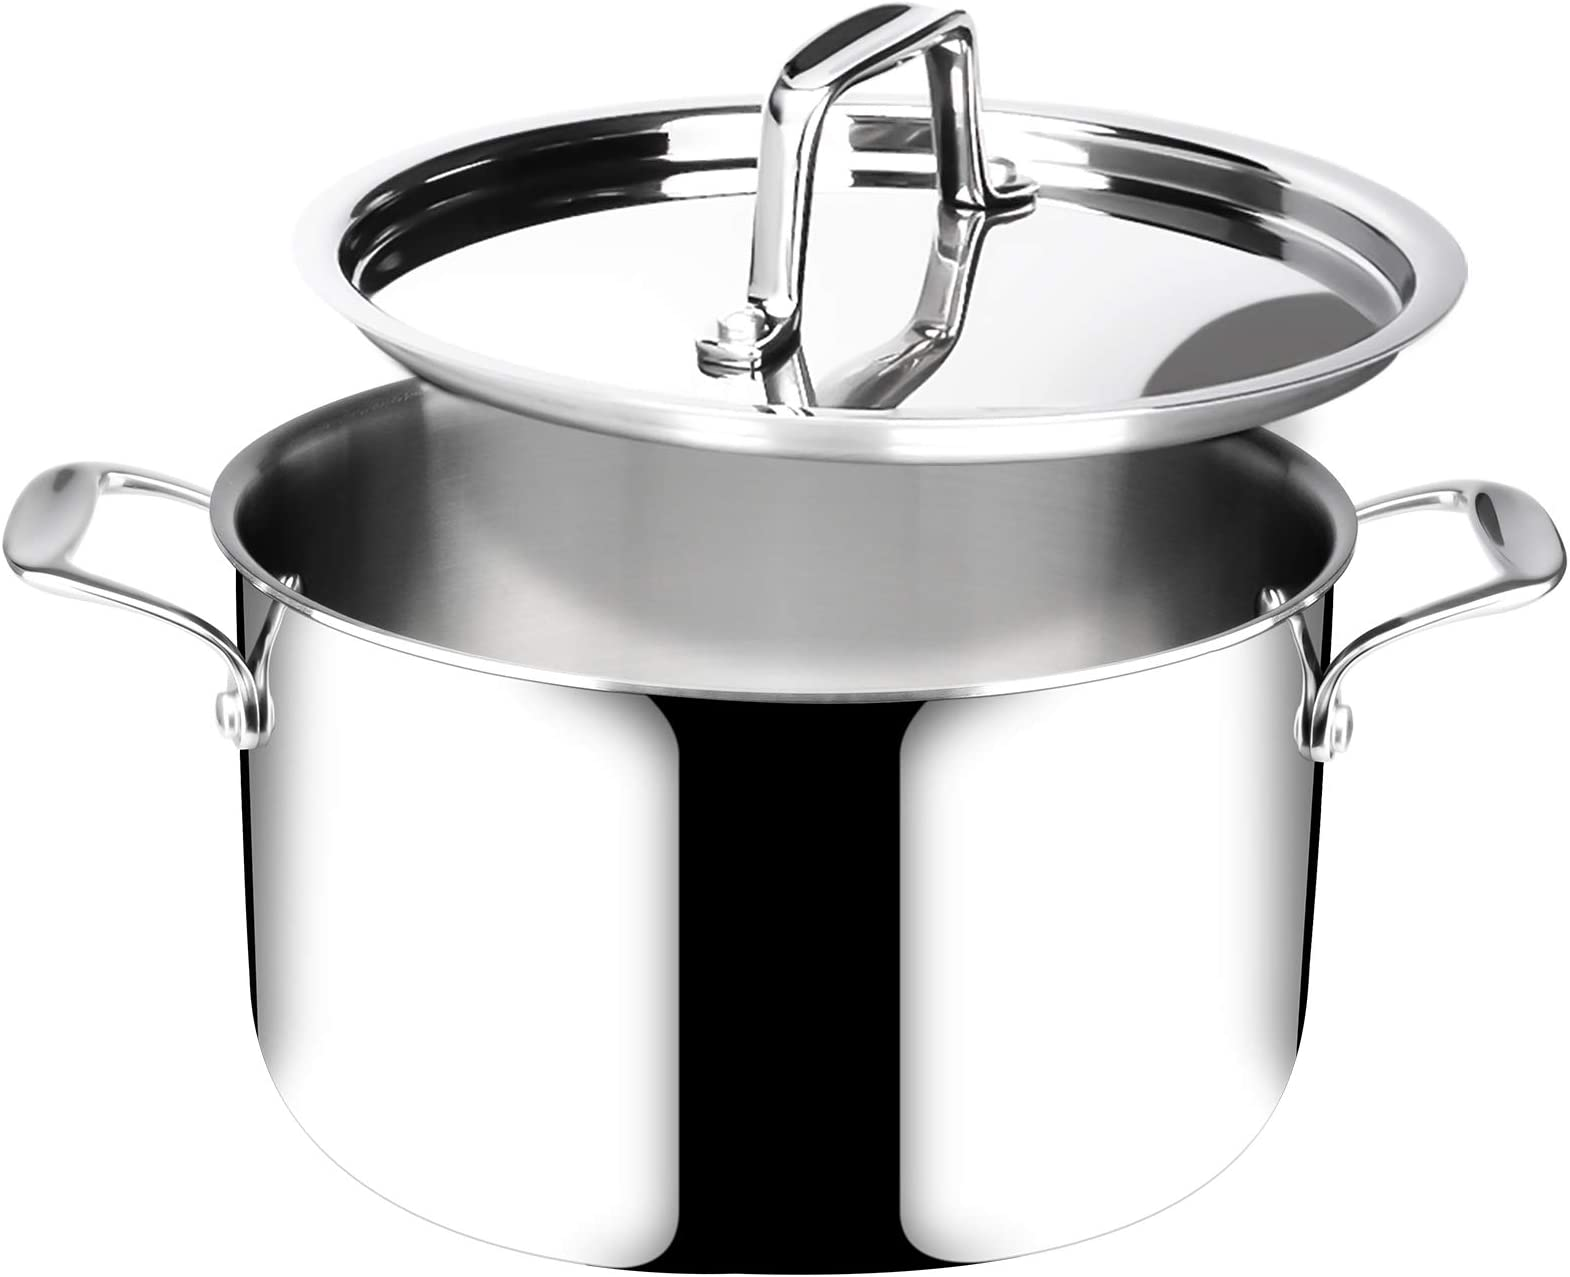 Duxtop Whole-Clad Tri-Ply Stainless Steel Stockpot with Lid, 6.5 Quart, Kitchen Induction Cookware